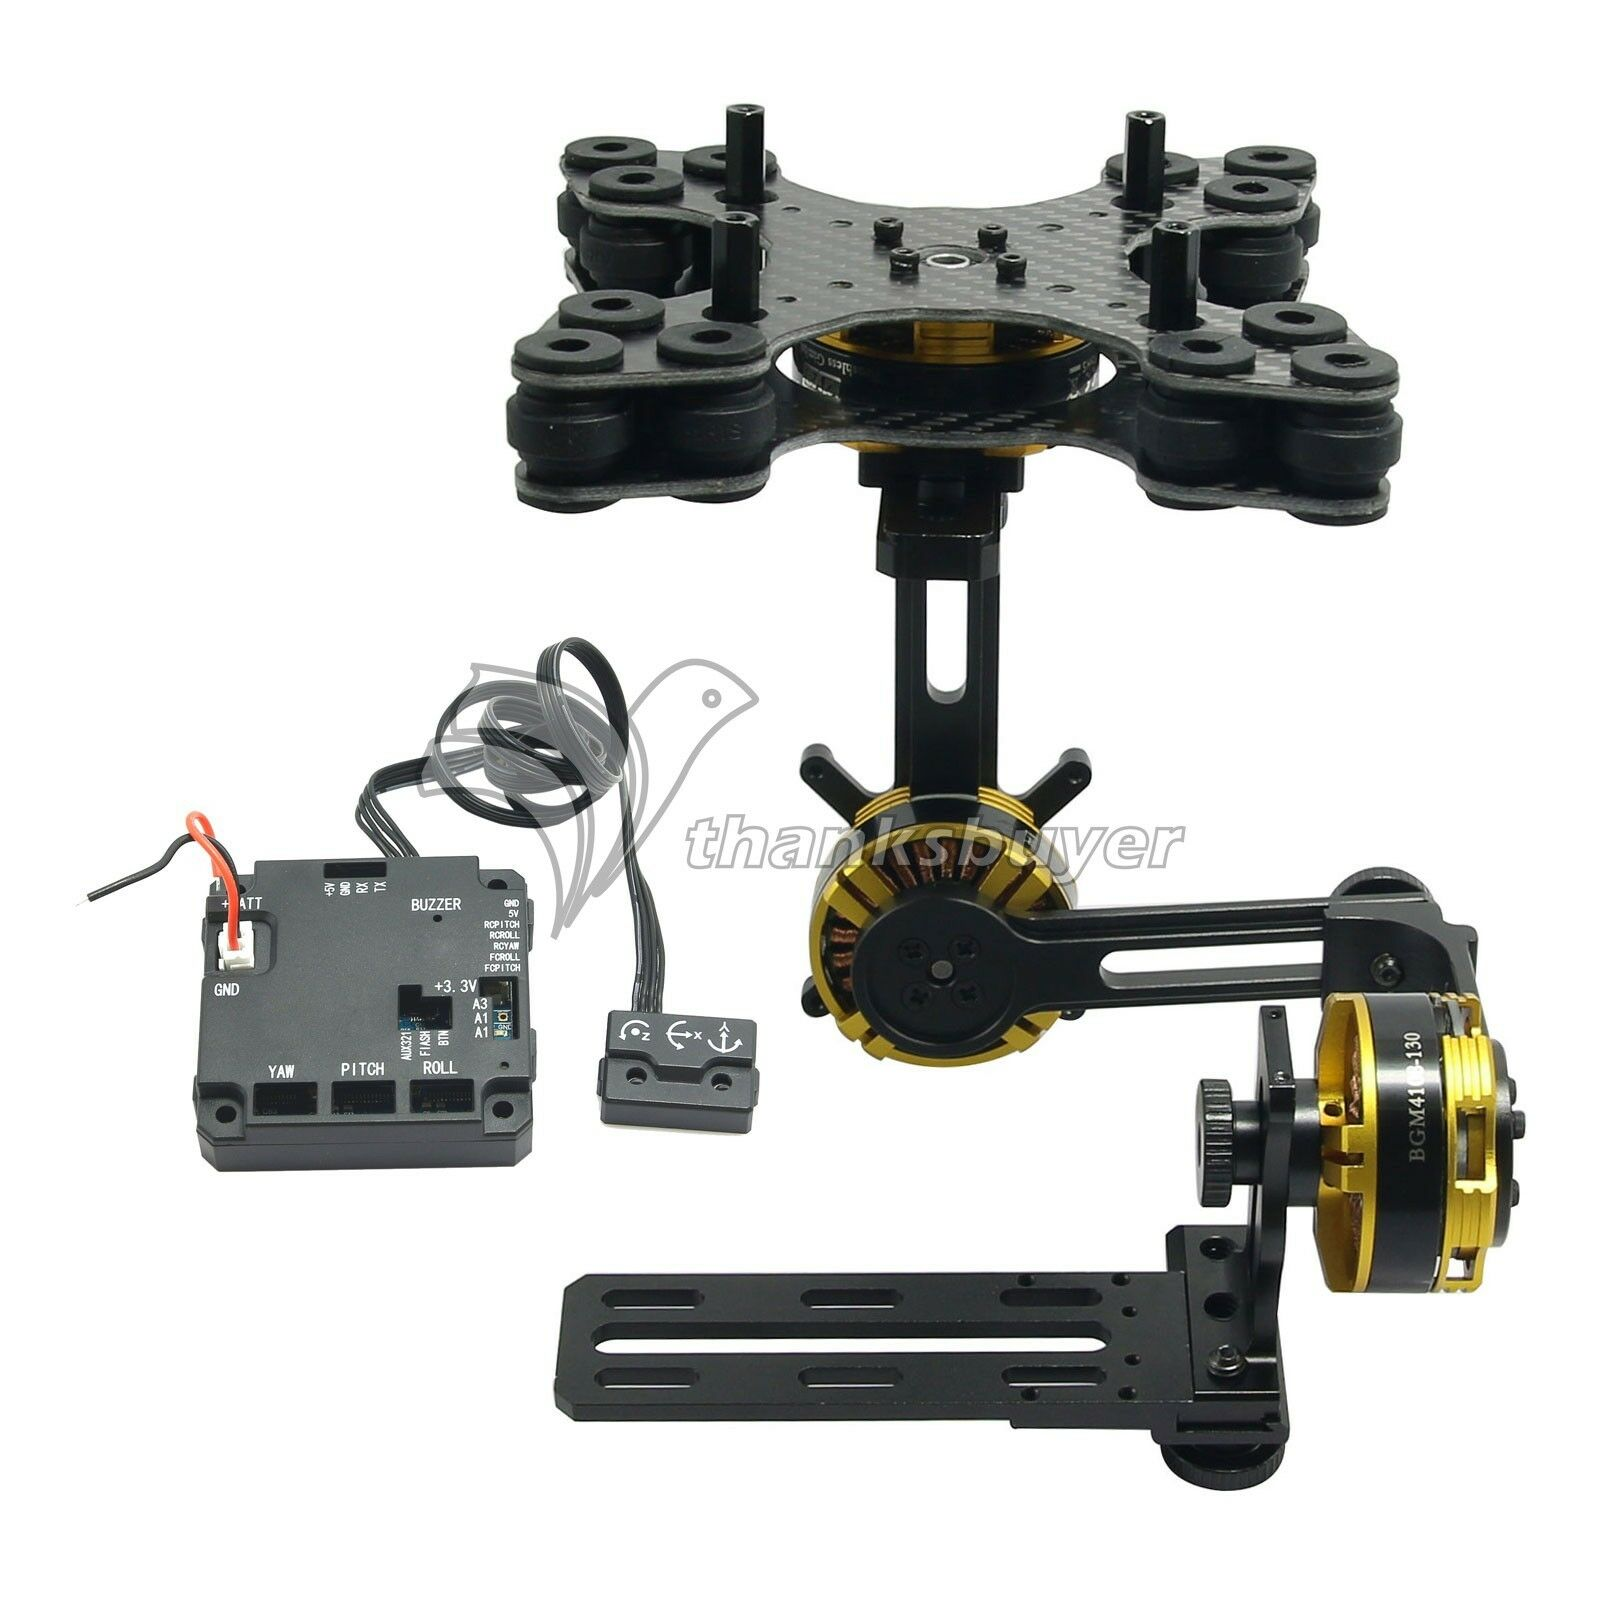 Aluminium  tuttioy Mini DSLR 3 Axis Brushless Gimbal with Motors e Controller  negozio fa acquisti e vendite